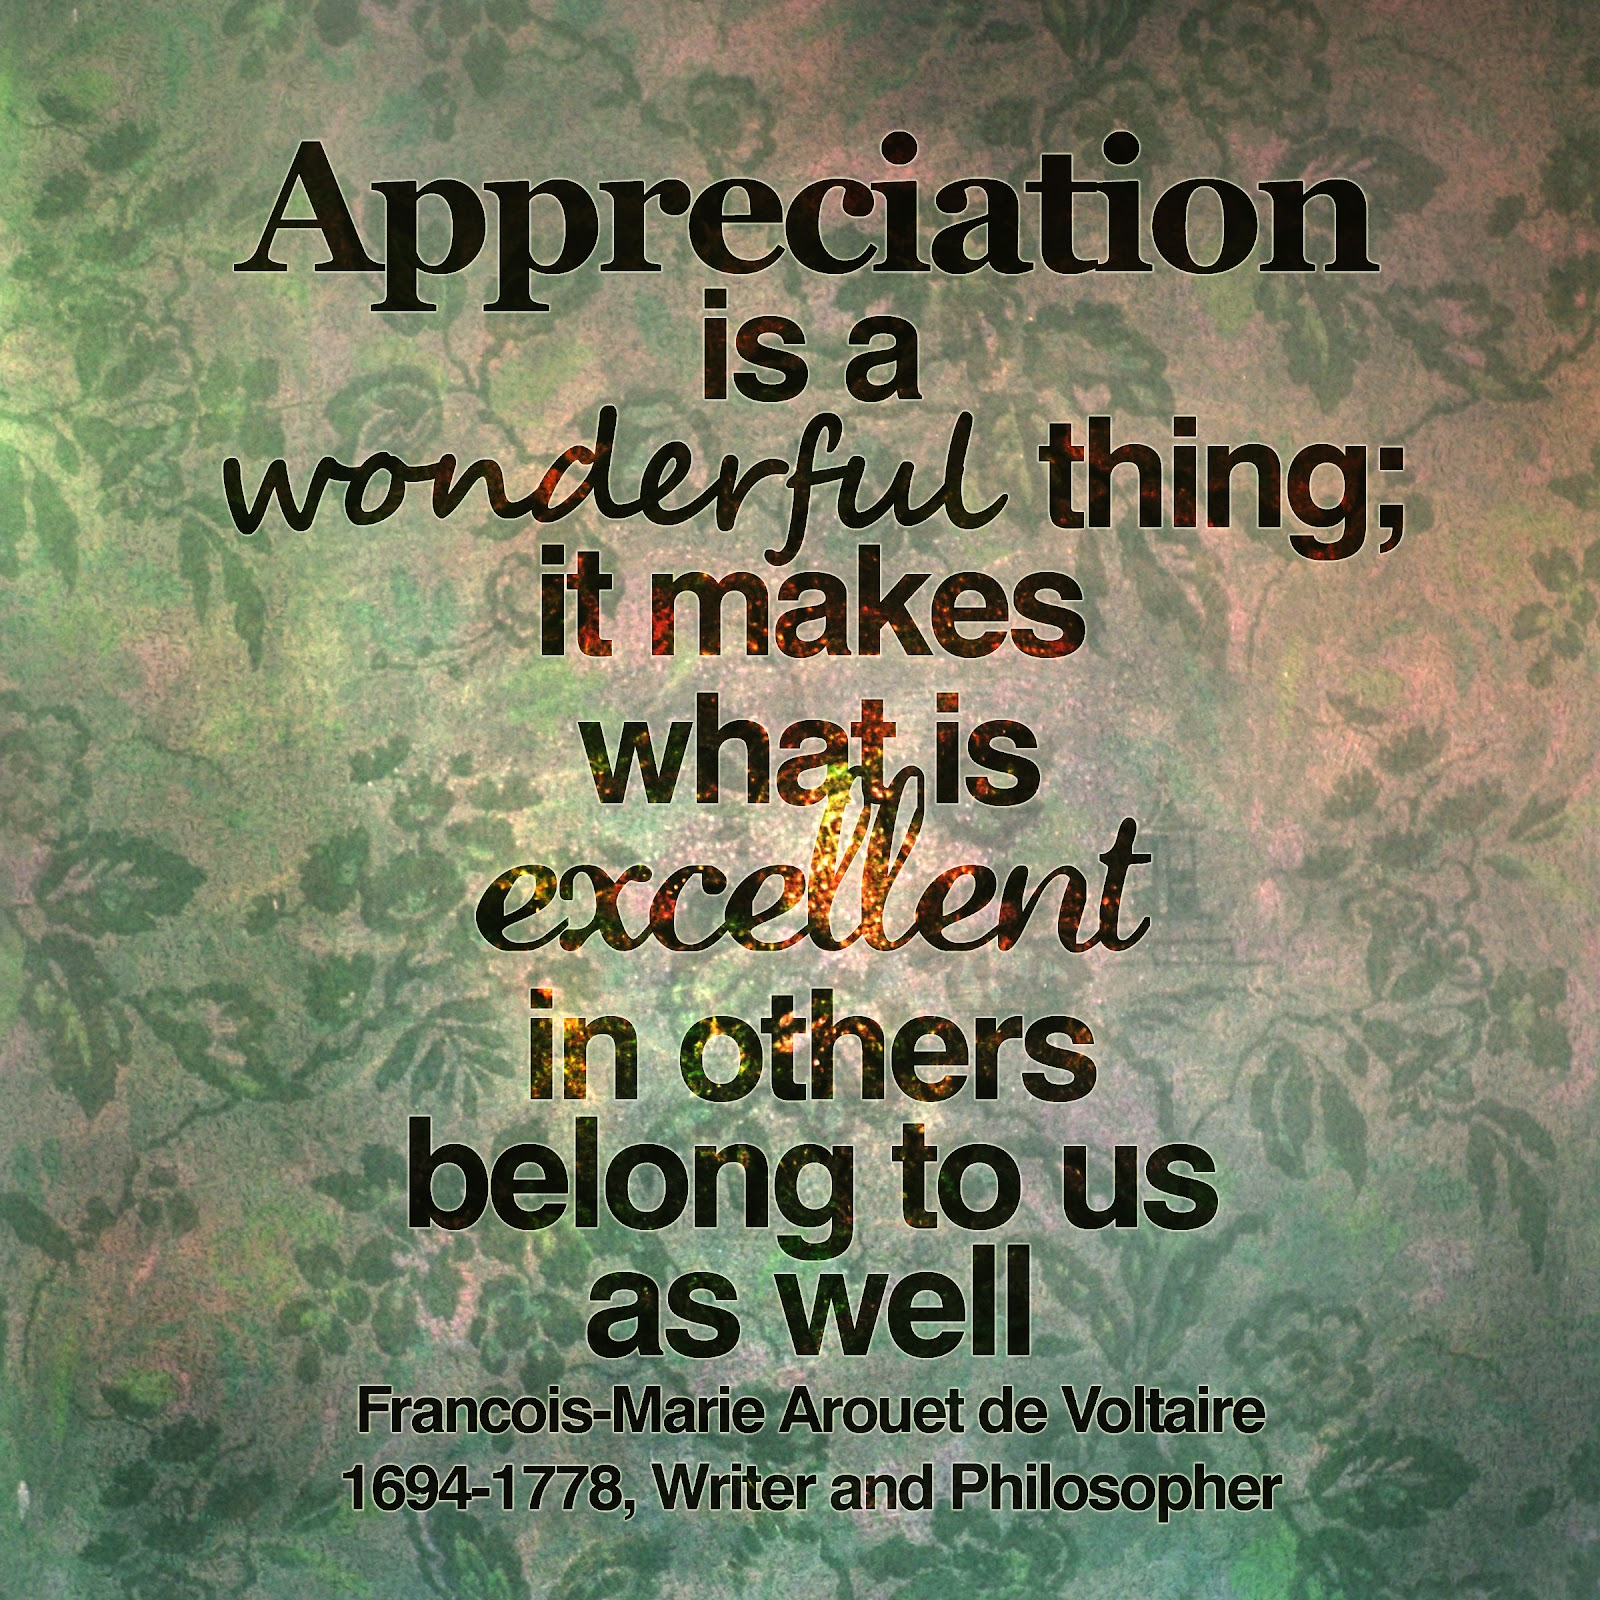 Appreciation is the source for others to flourish